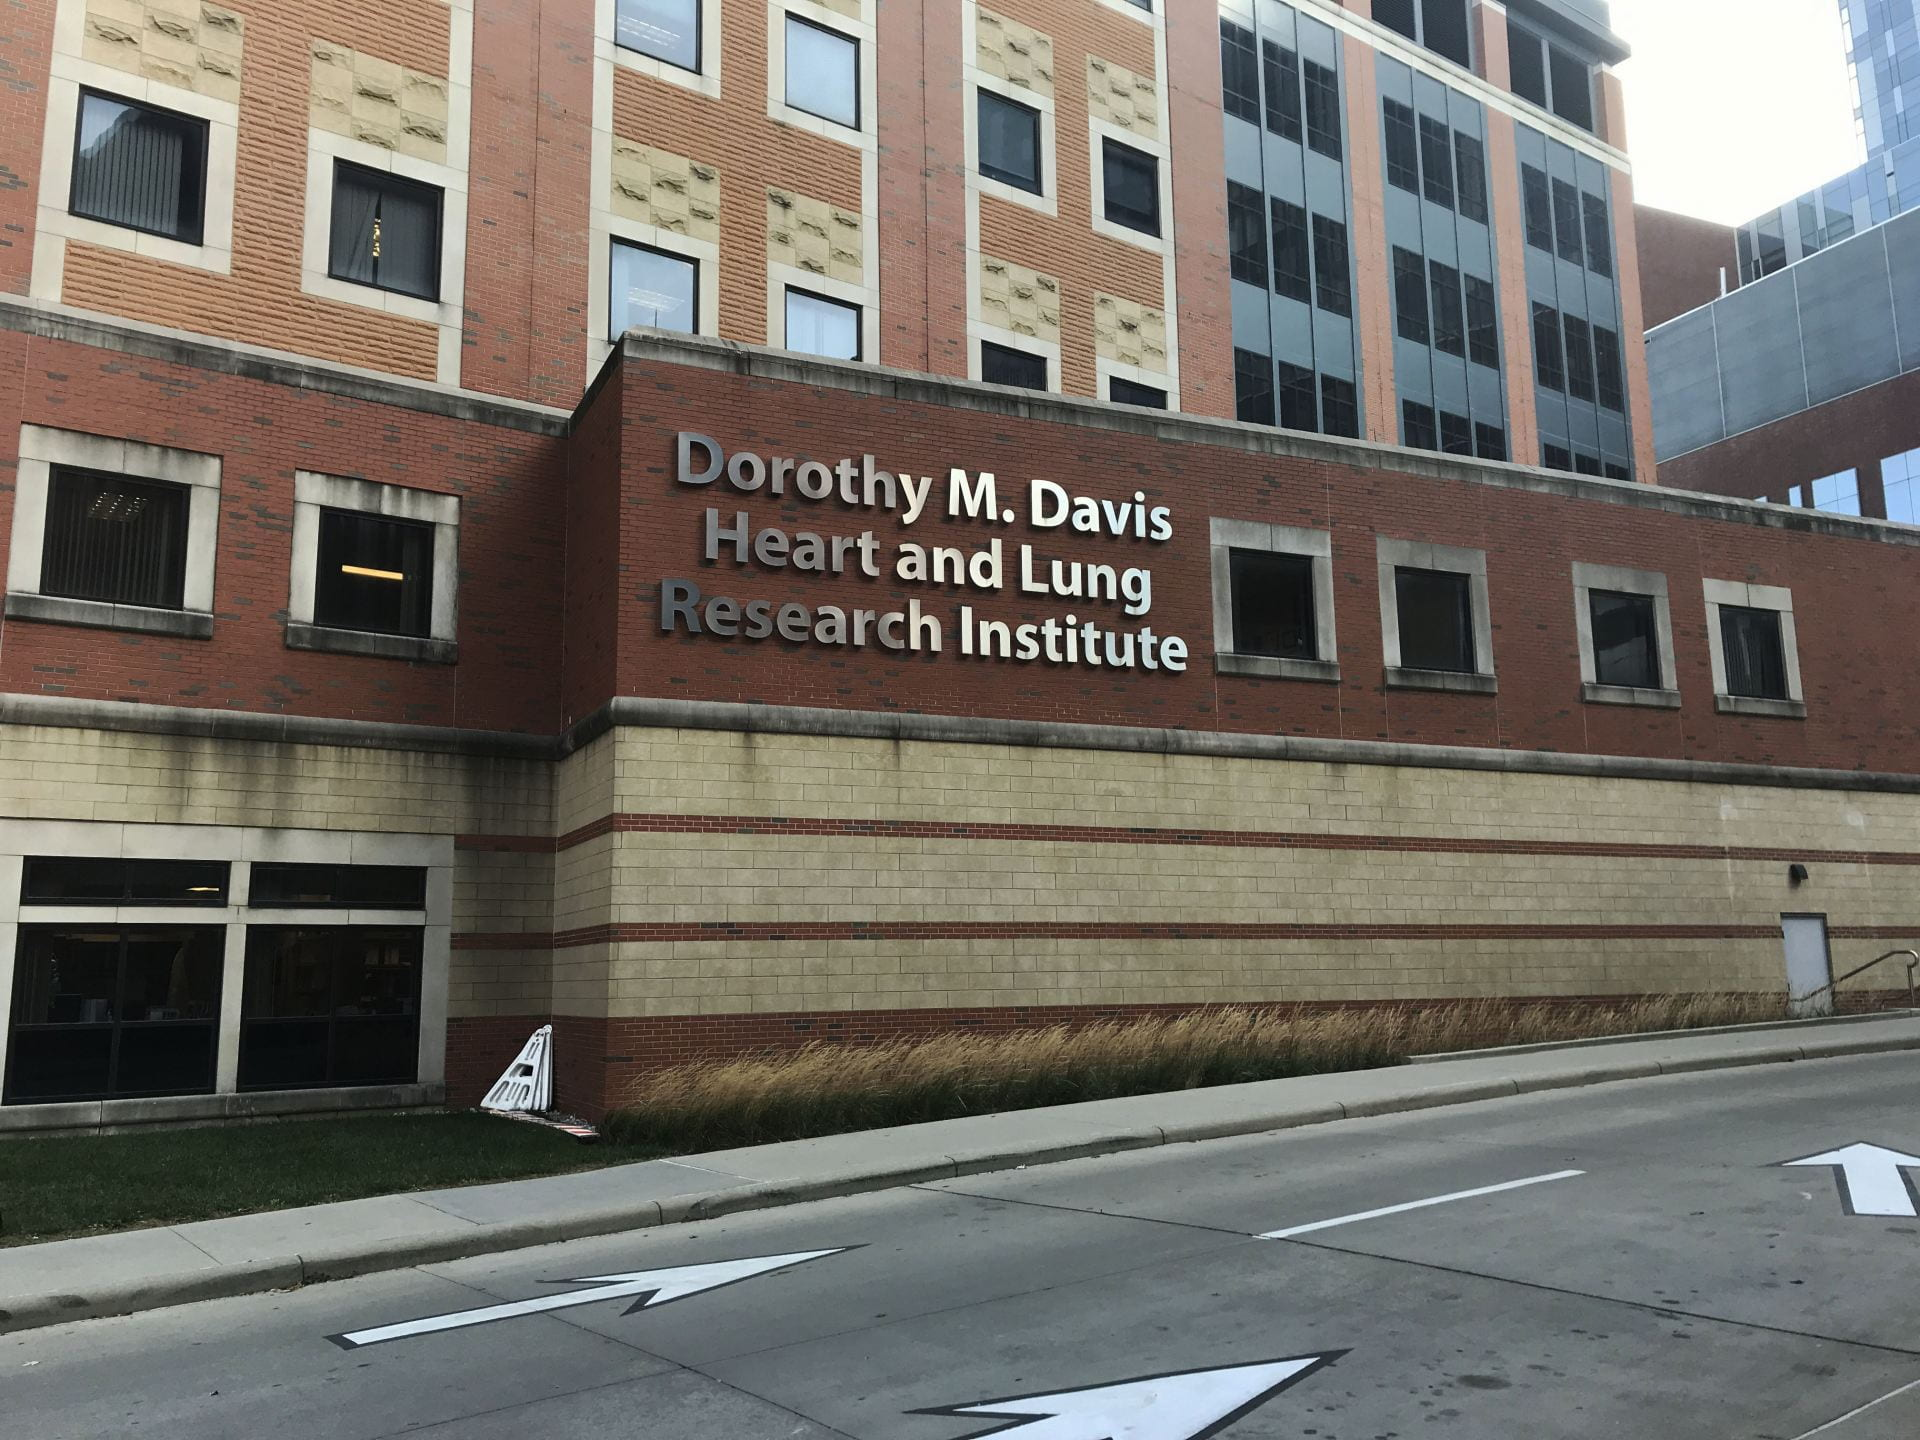 the outside of the dorothy m davis heart and lung research institute